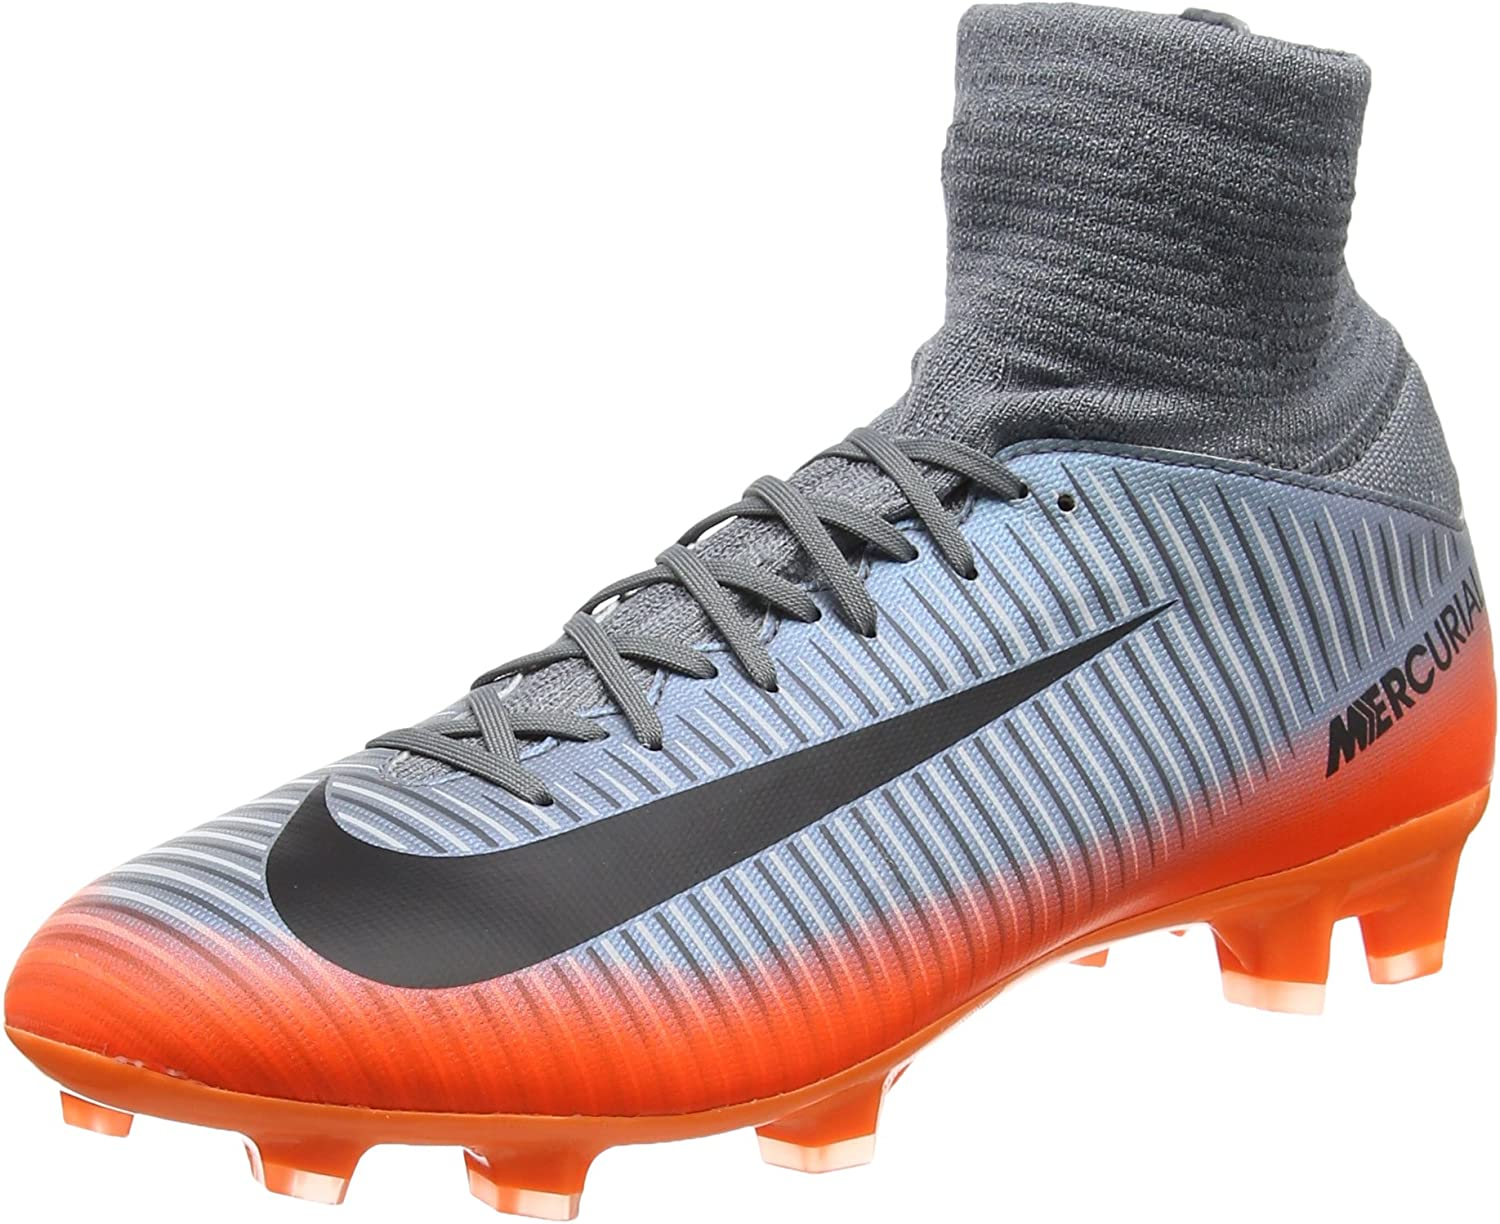 Nike Mercurial Superfly V Cr7 FG, Chaussures de Football